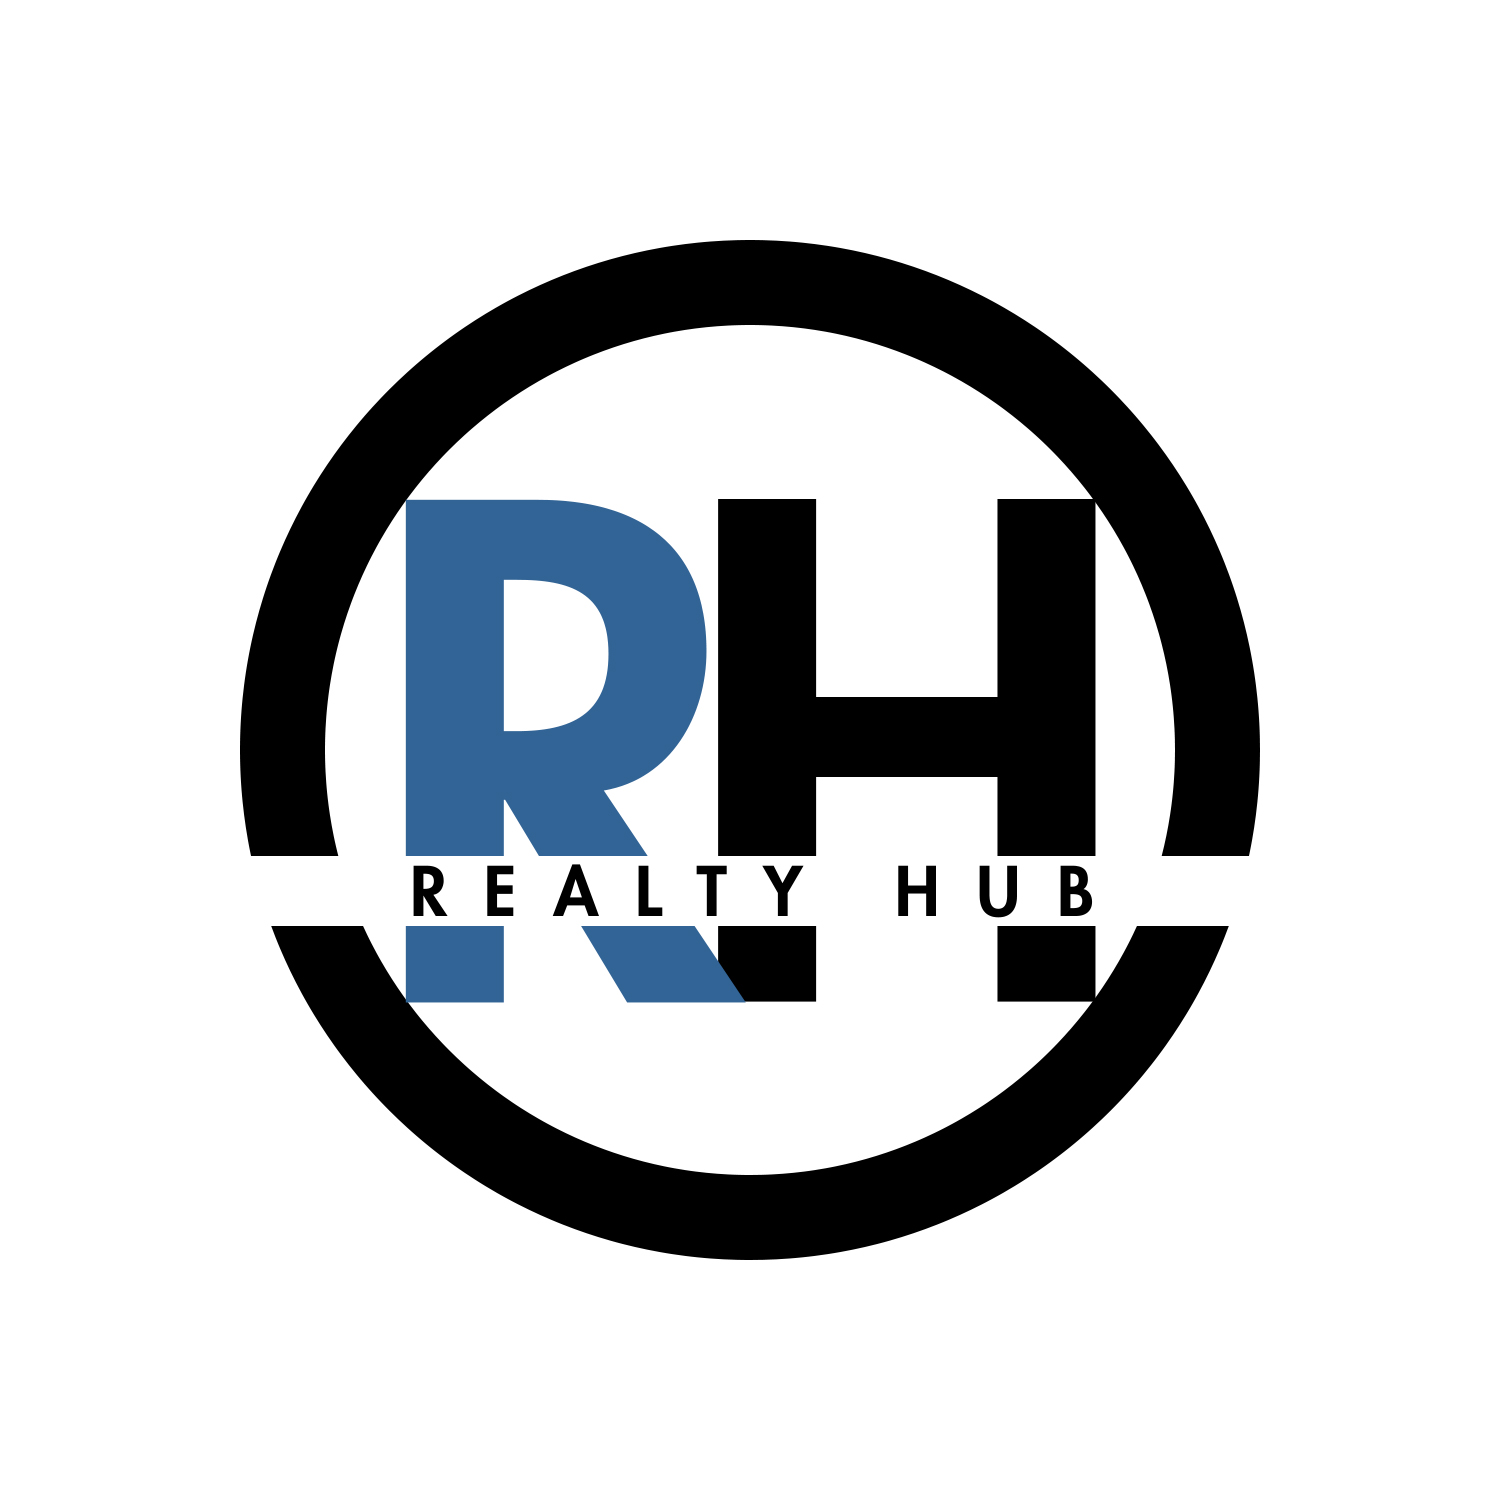 About the hub realty hub is one of texas premier residential real estate brokerages our team of associates strive to not only be a resource for you throughout your real biocorpaavc